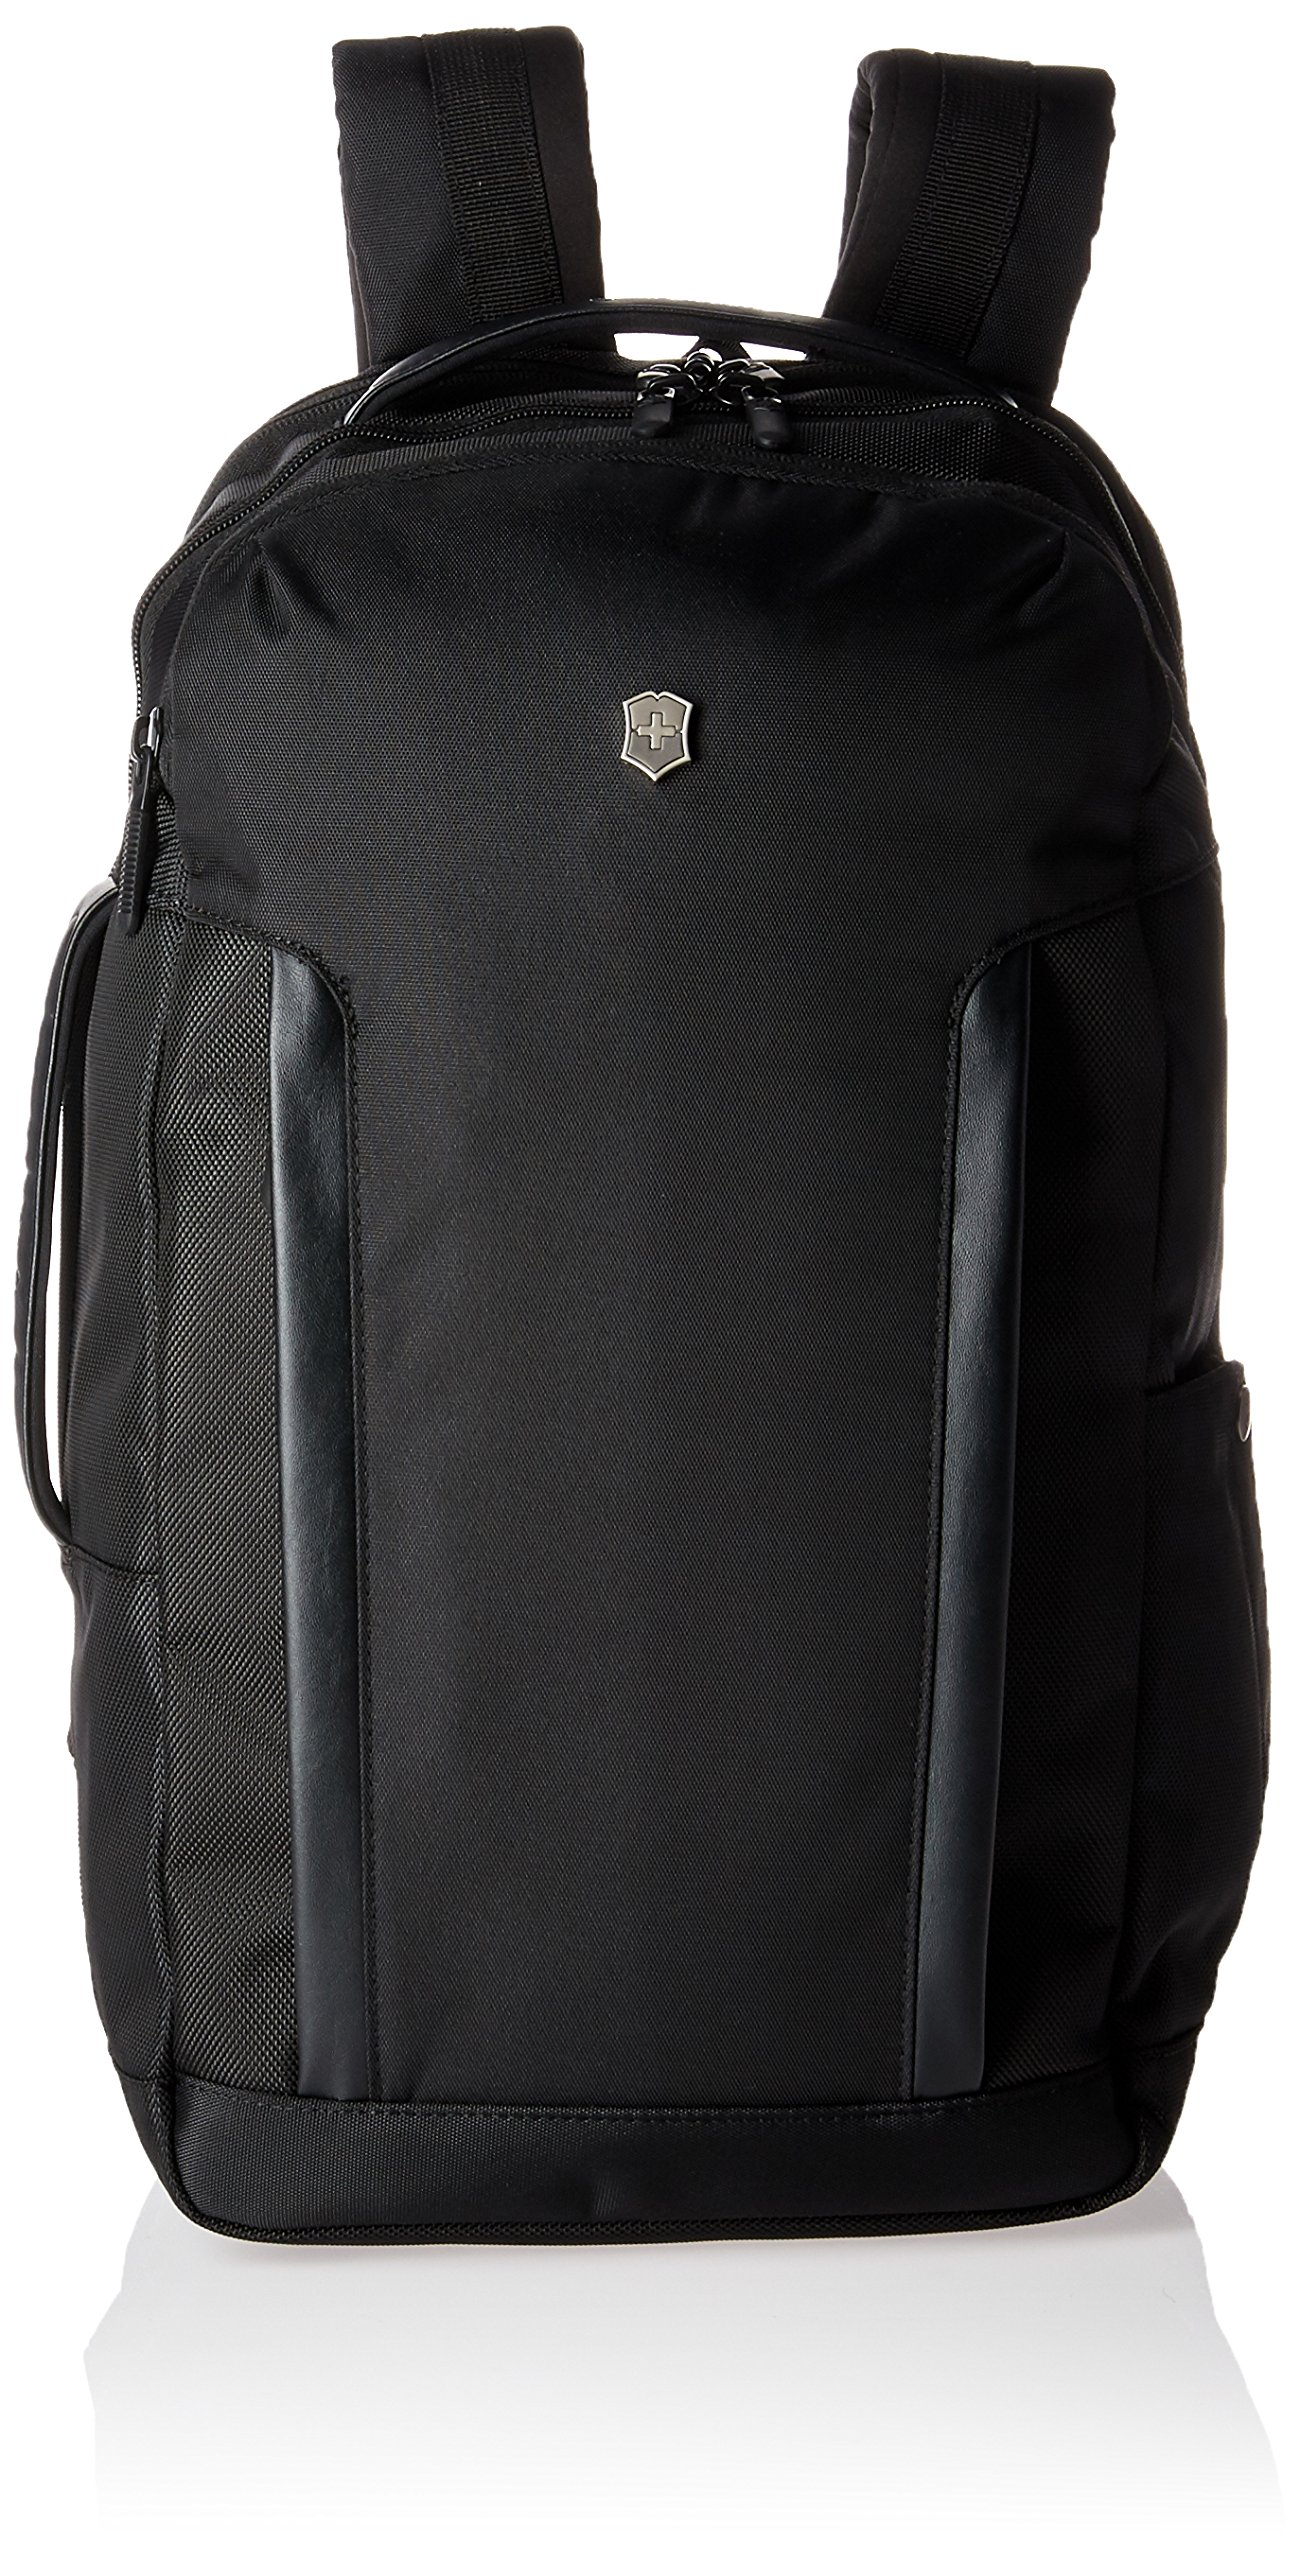 Victorinox Altmont Professional Deluxe Travel Laptop Backpack, Black, One Size by Victorinox